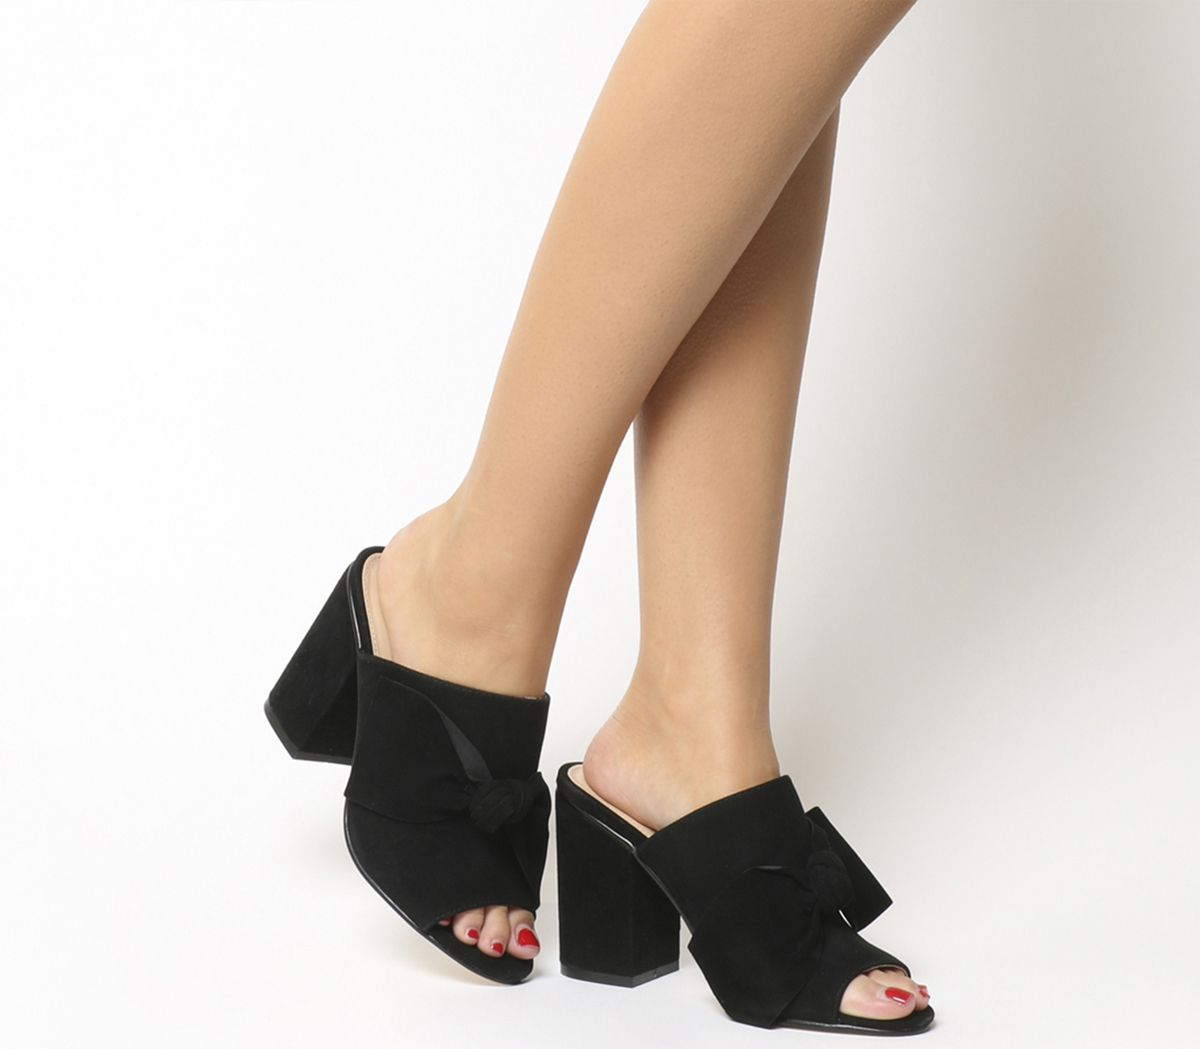 dbc598f926 Office Heather Bow Mules Black Suede - High Heels